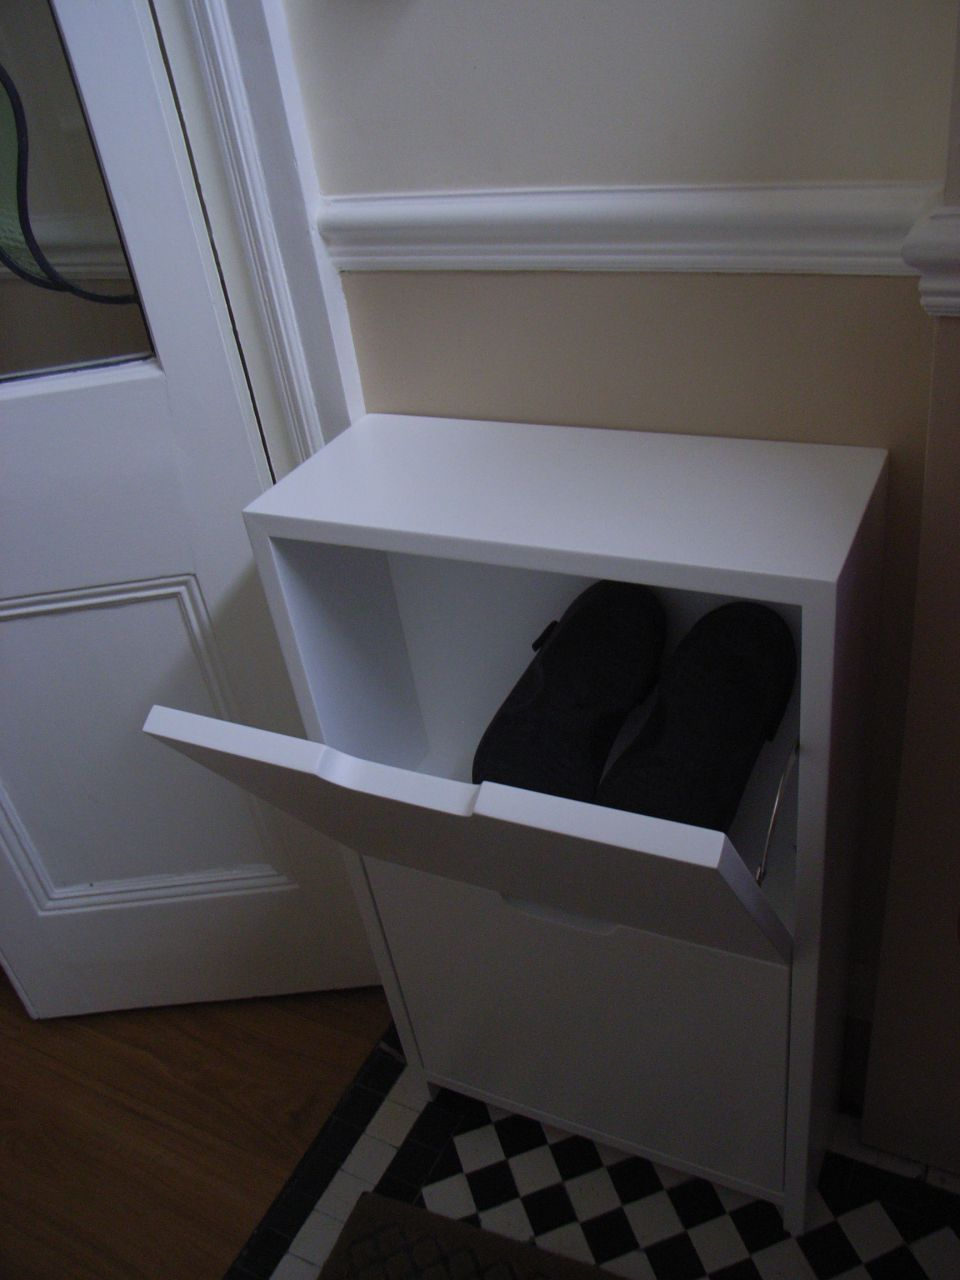 bespoke shoe storage unit